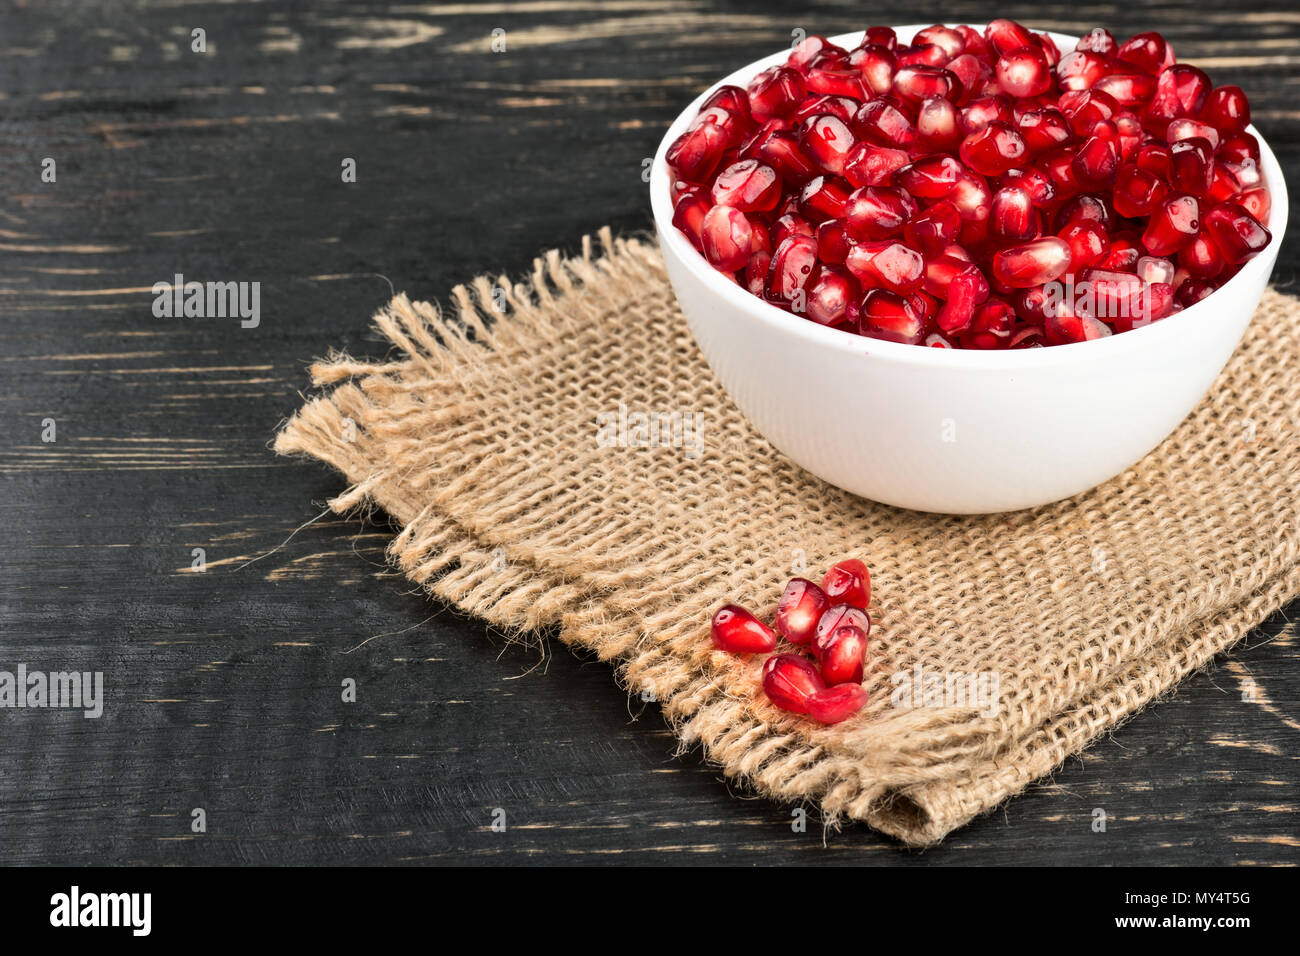 Ceramic bowl filled with pomegranate seeds on sackcloth and table - Stock Image